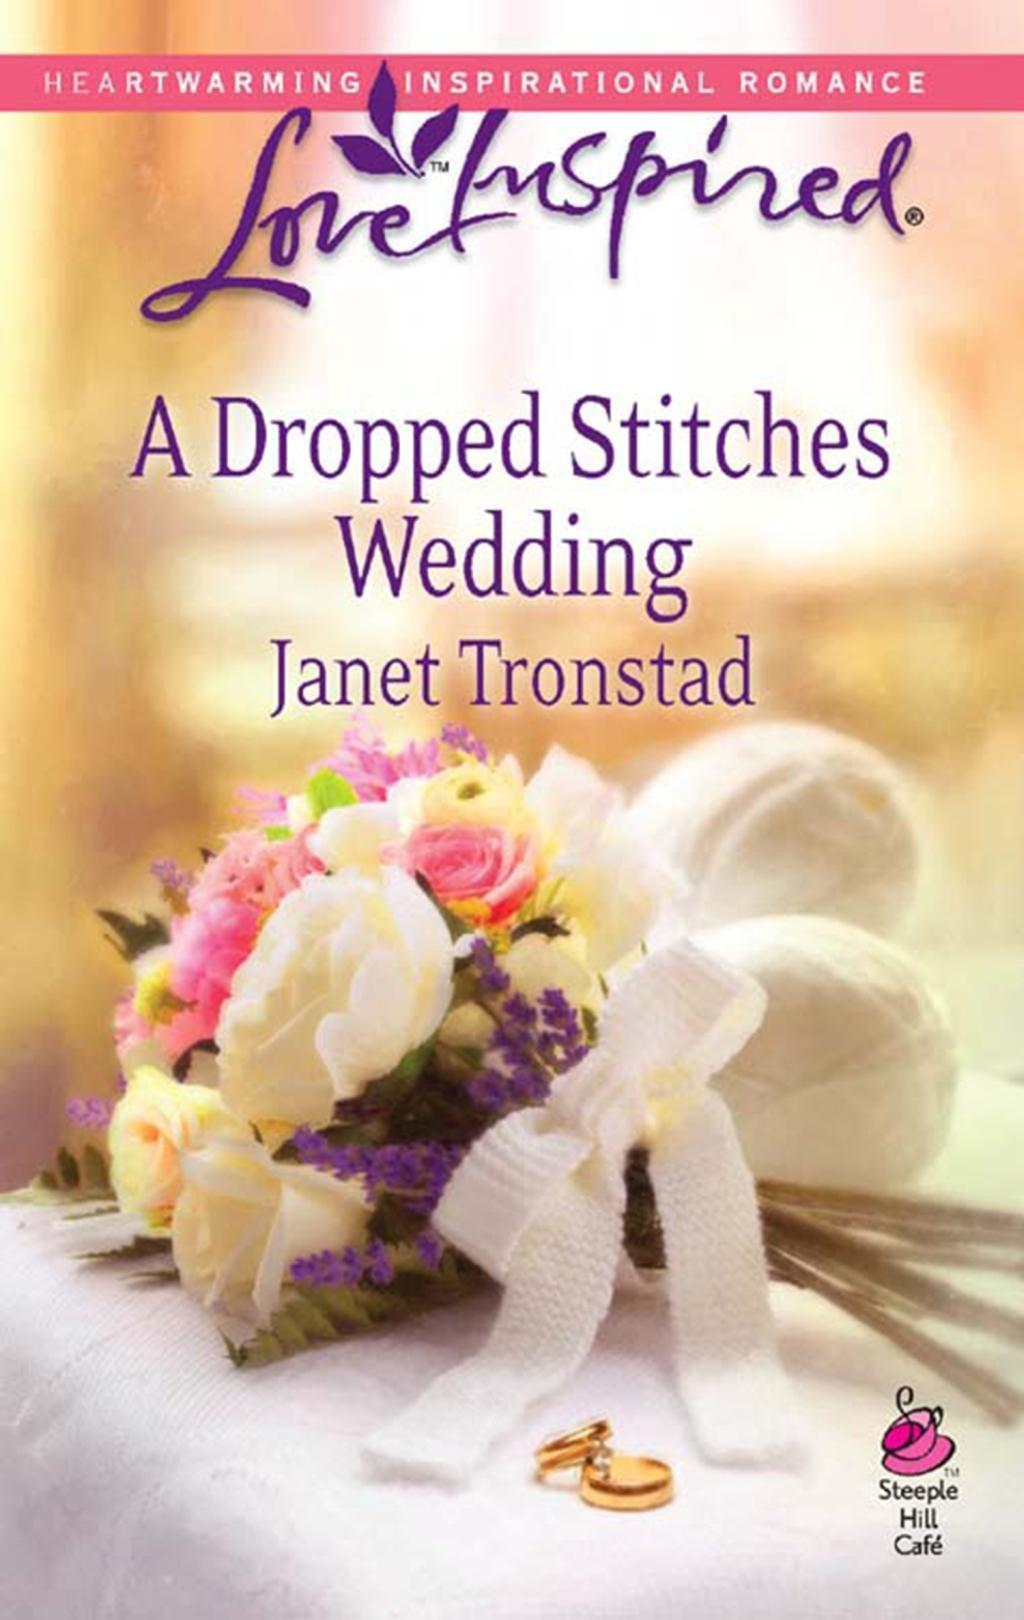 A Dropped Stitches Wedding (Mills & Boon Love Inspired) (Steeple Hill Café, Book 11)